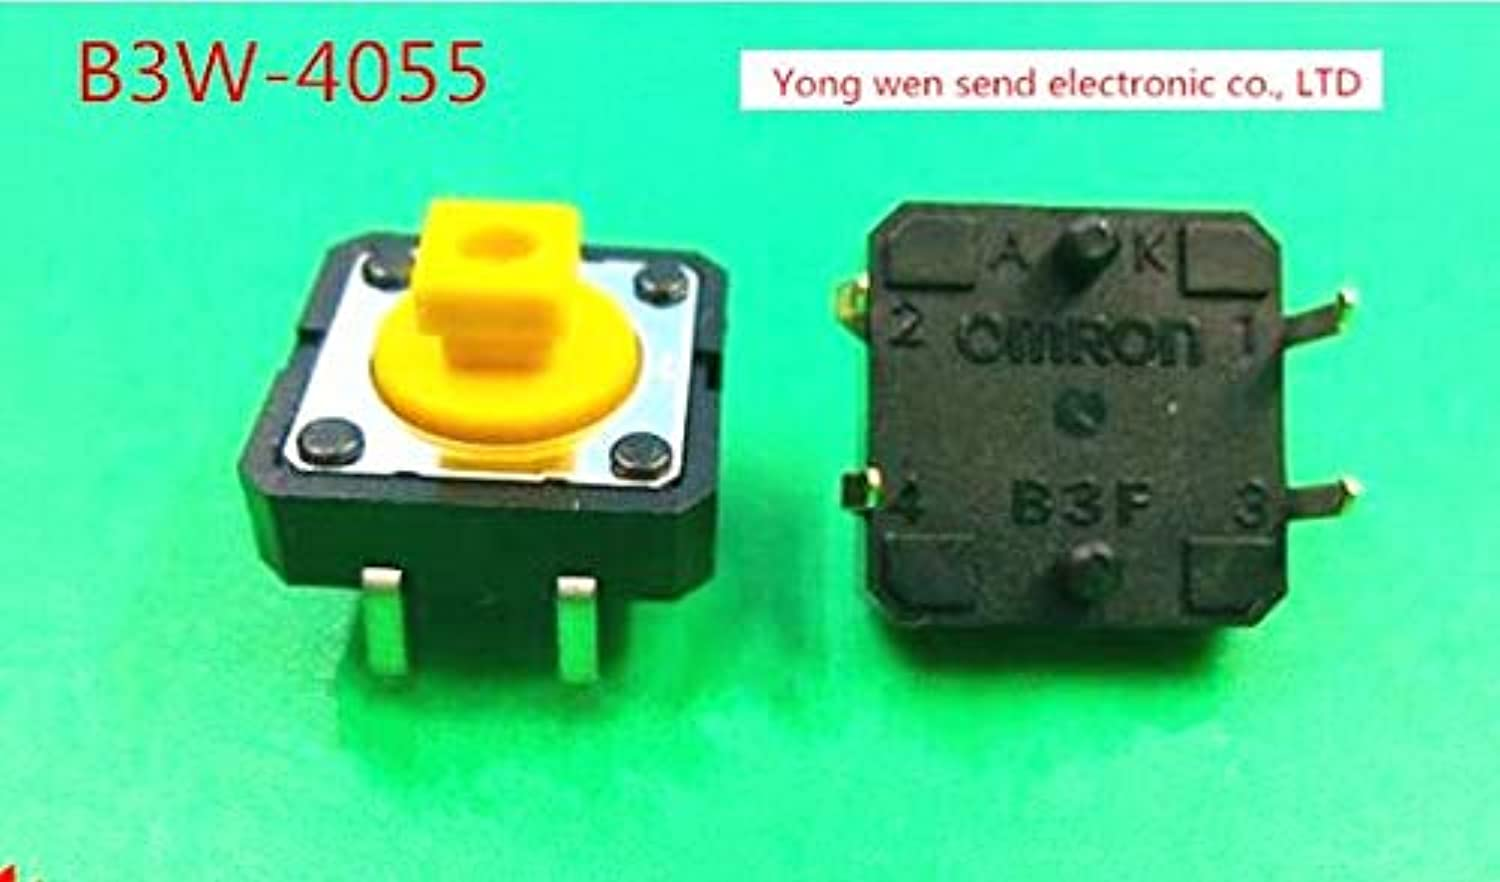 New OMRON B3W4055 B3W4055 3.43N Seal Waterproof and dustproof Micro Light Touch Switch Button Key Switch DIP4